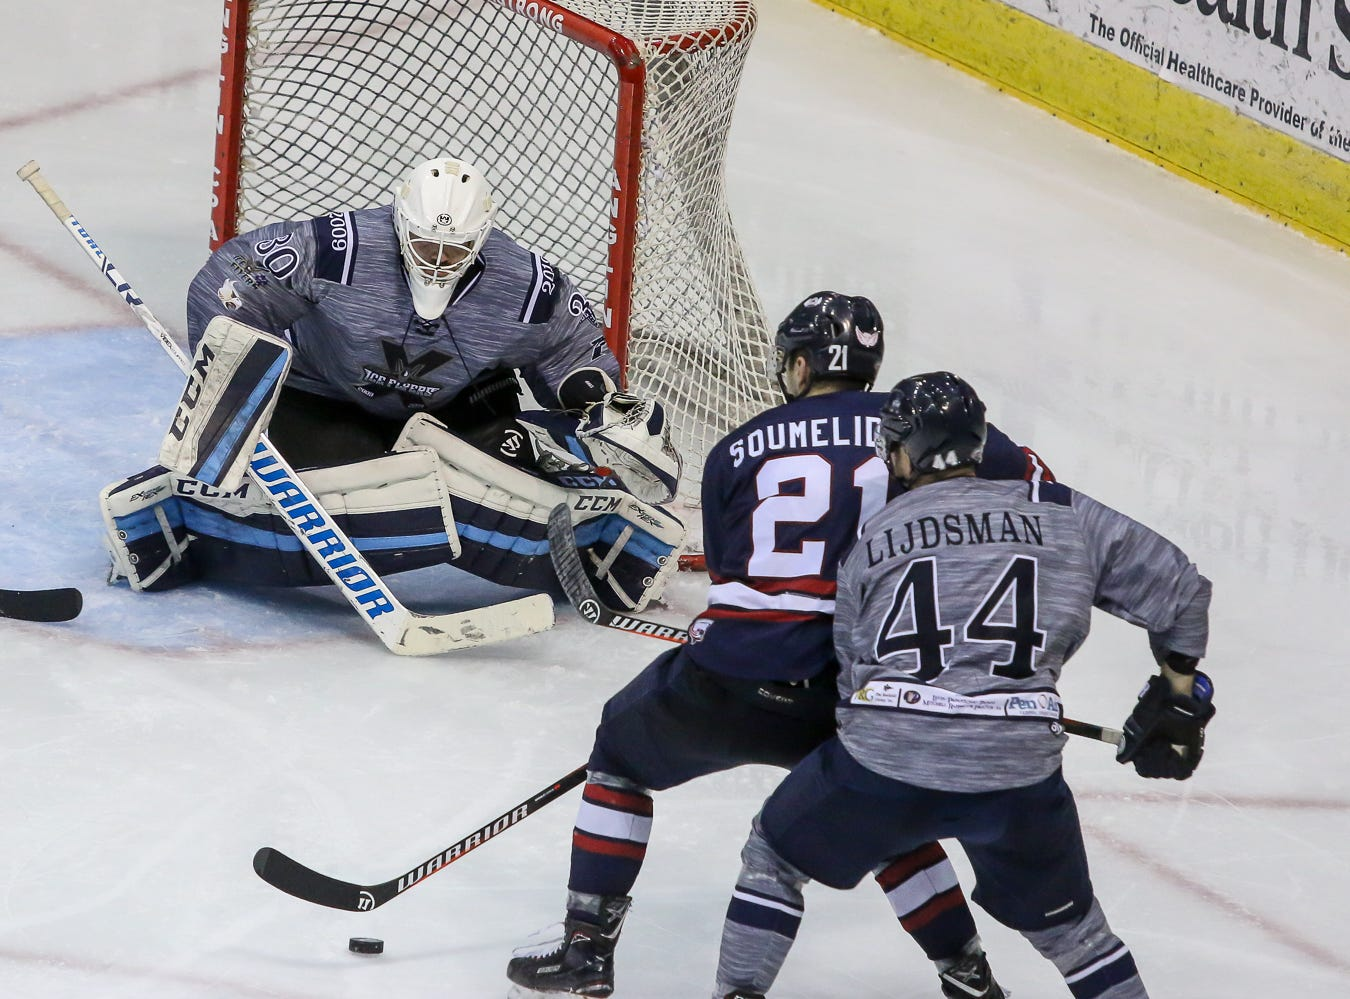 Pensacola goaltender Brian Billett (30) sets up to stop a possible shot by Macon's Stathis Soumelidis (21) during the last home game of the regular season at the Pensacola Bay Center on Saturday, March 23, 2019. With over 4,300 people in attendance for Pensacola's 3-1 victory, the Ice Flyers mark six straight years of over 100,000 people at their home games each season. The team has won their last five games in a row and will finish out their last five games on the road before entering the playoffs in a couple of weeks.